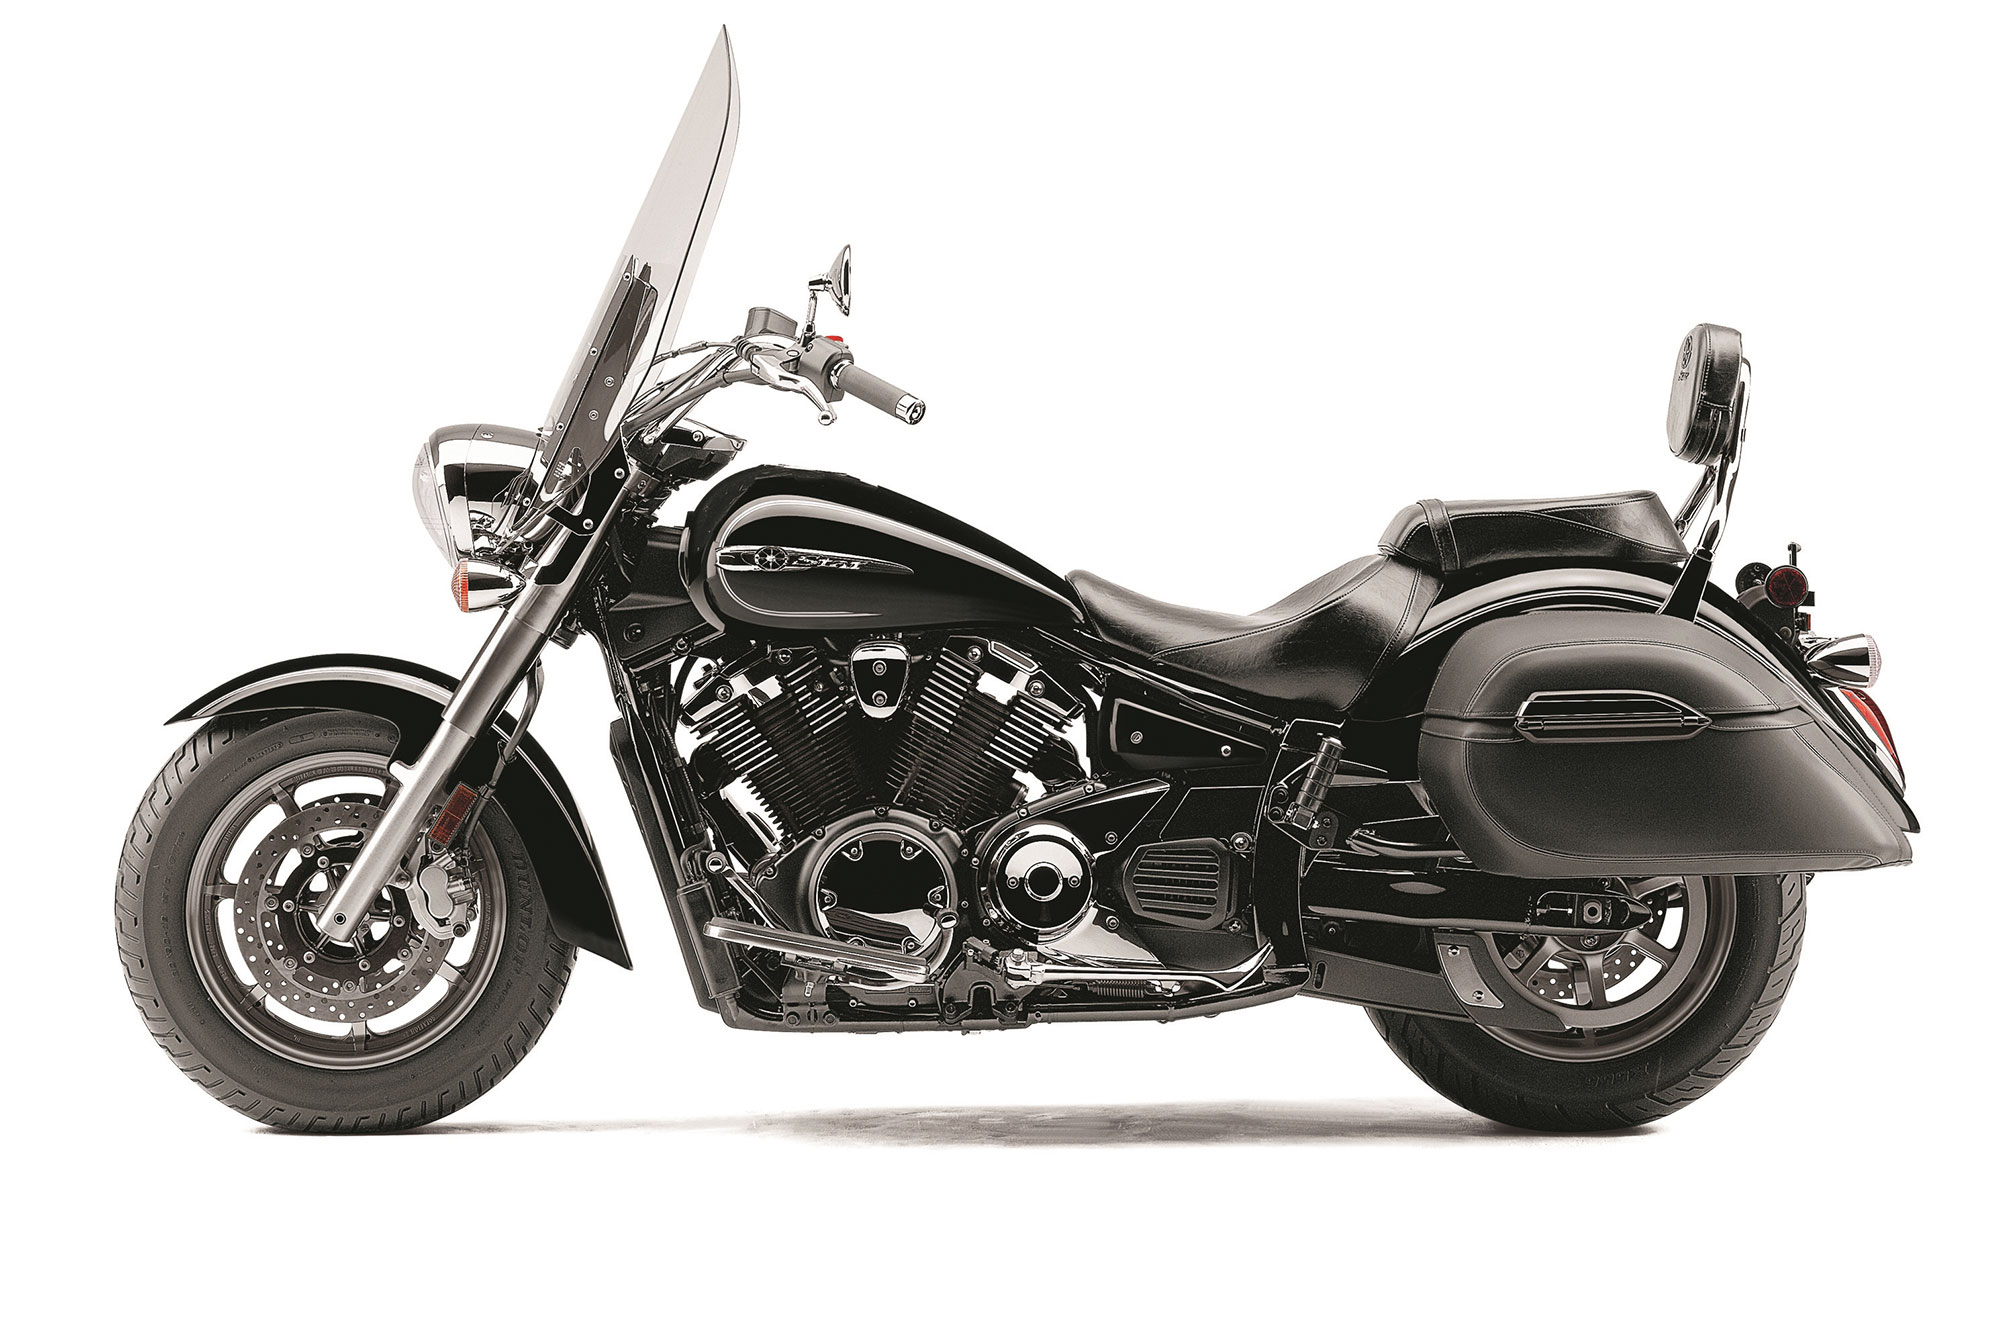 2014 yamaha v star 1300 tourer review for Yamaha motorcycle store near me